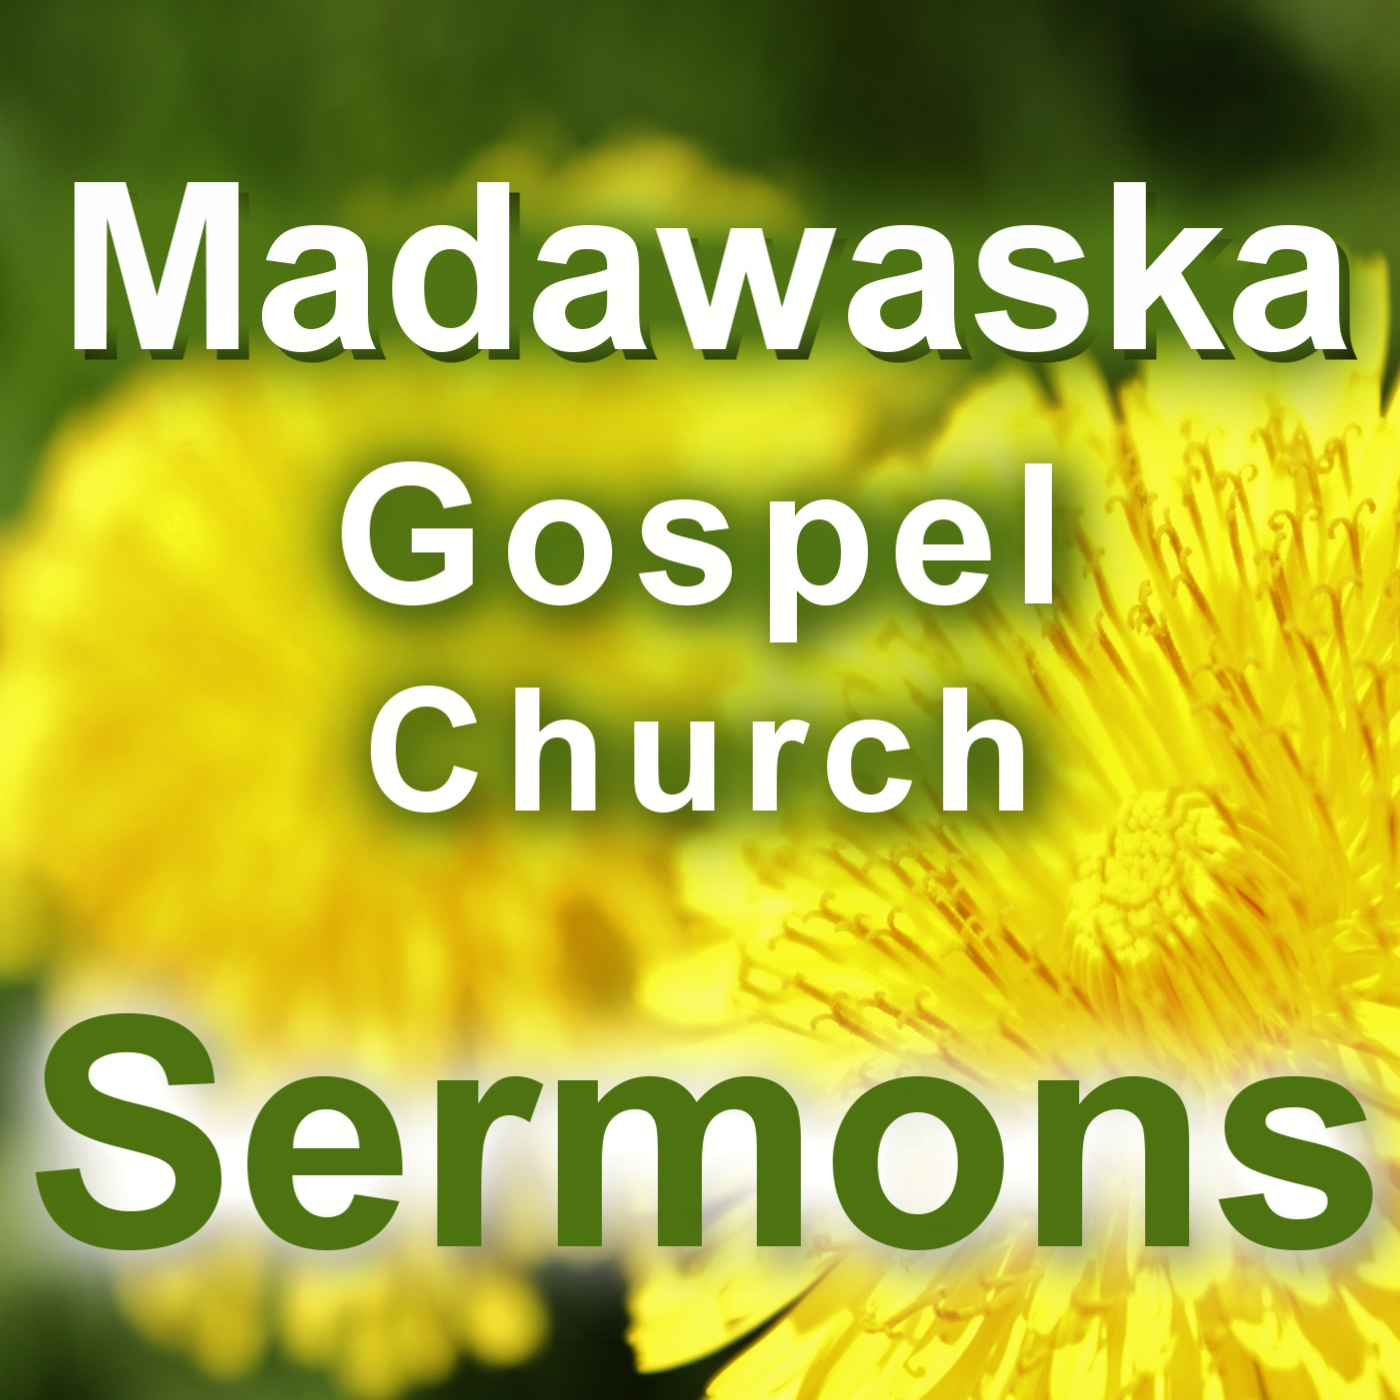 Madawaska Gospel Church Sermons